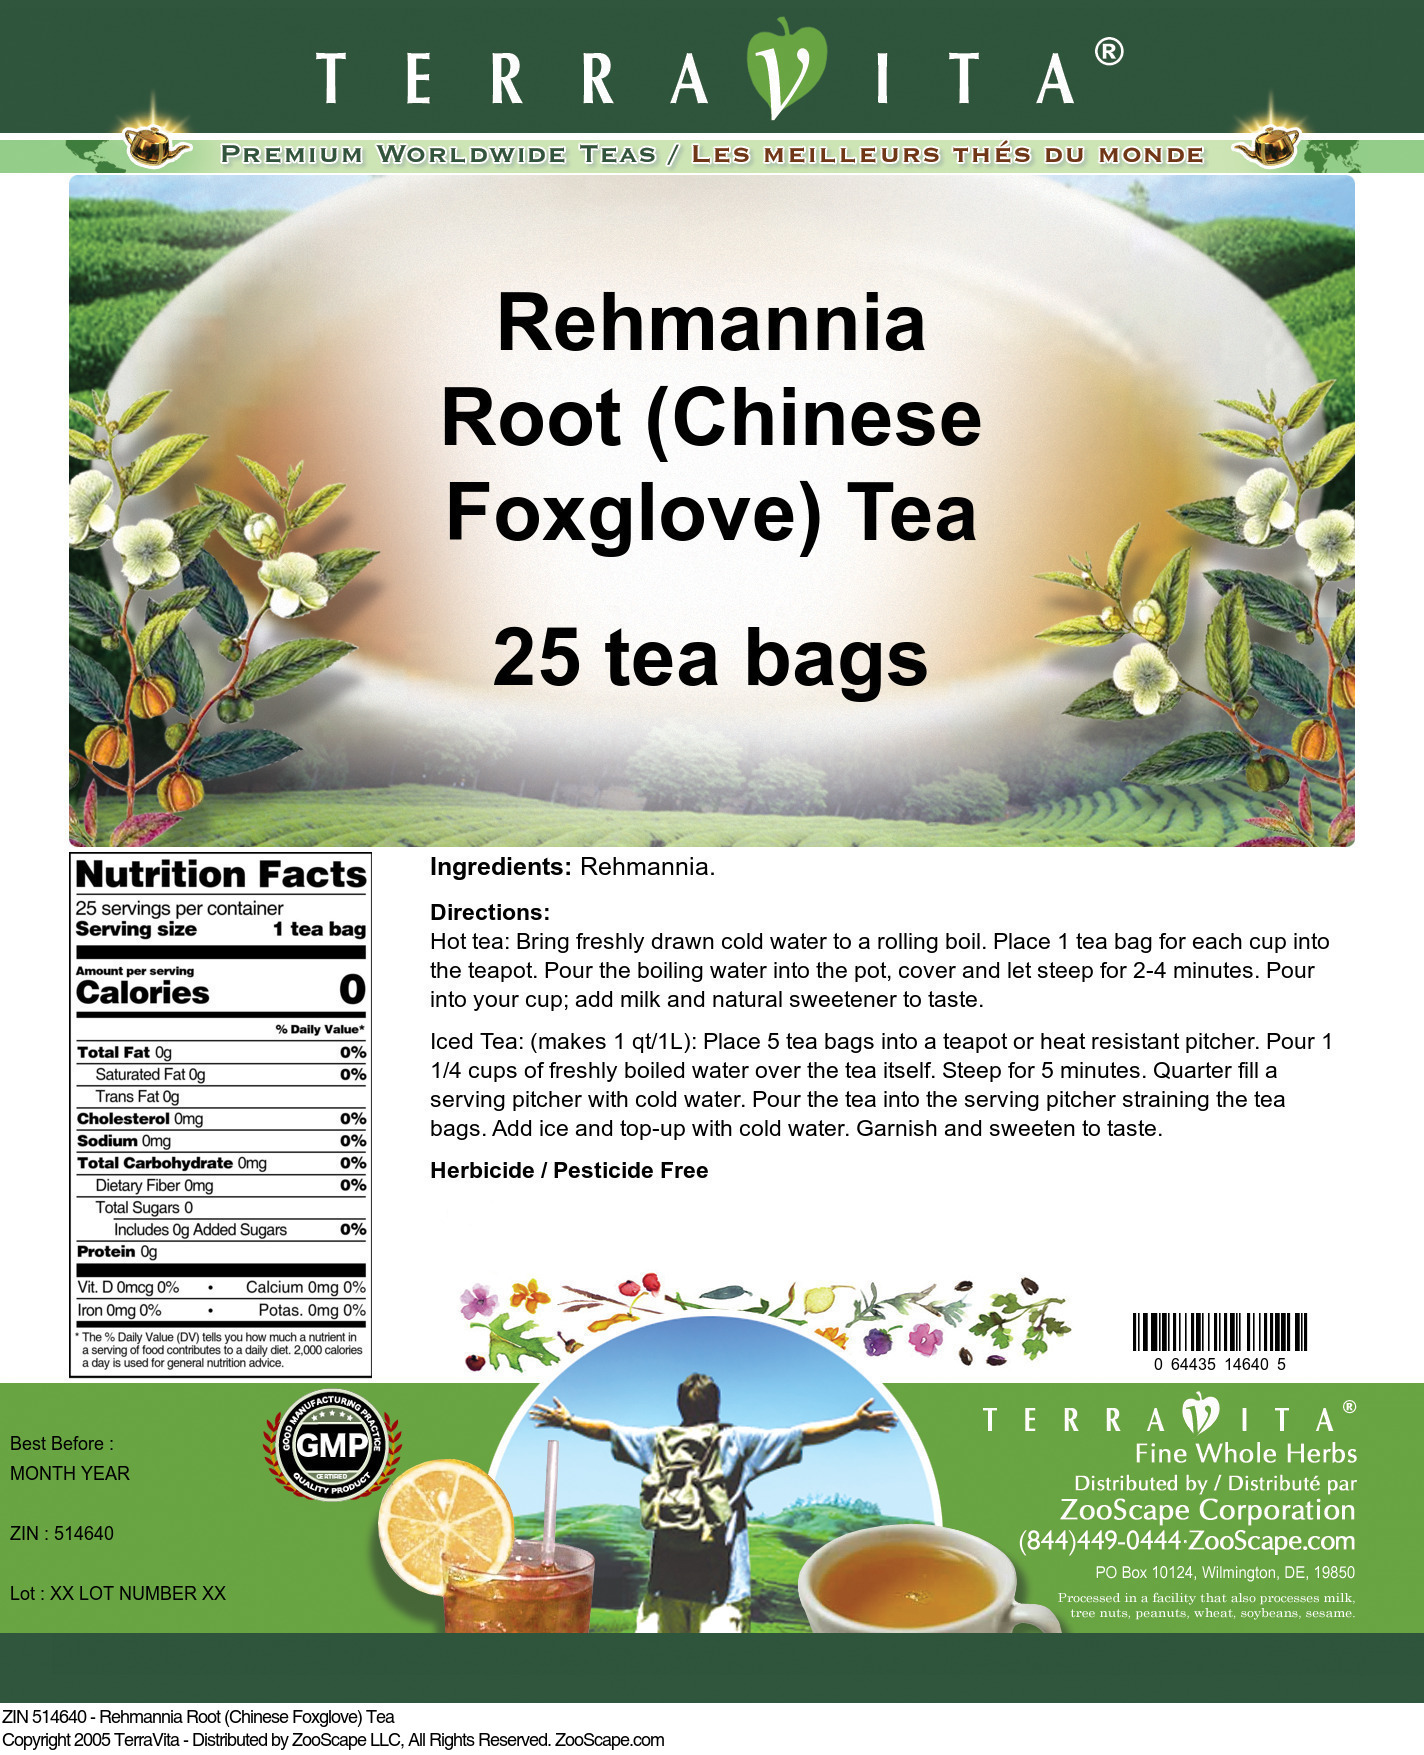 how to make rehmannia root tea